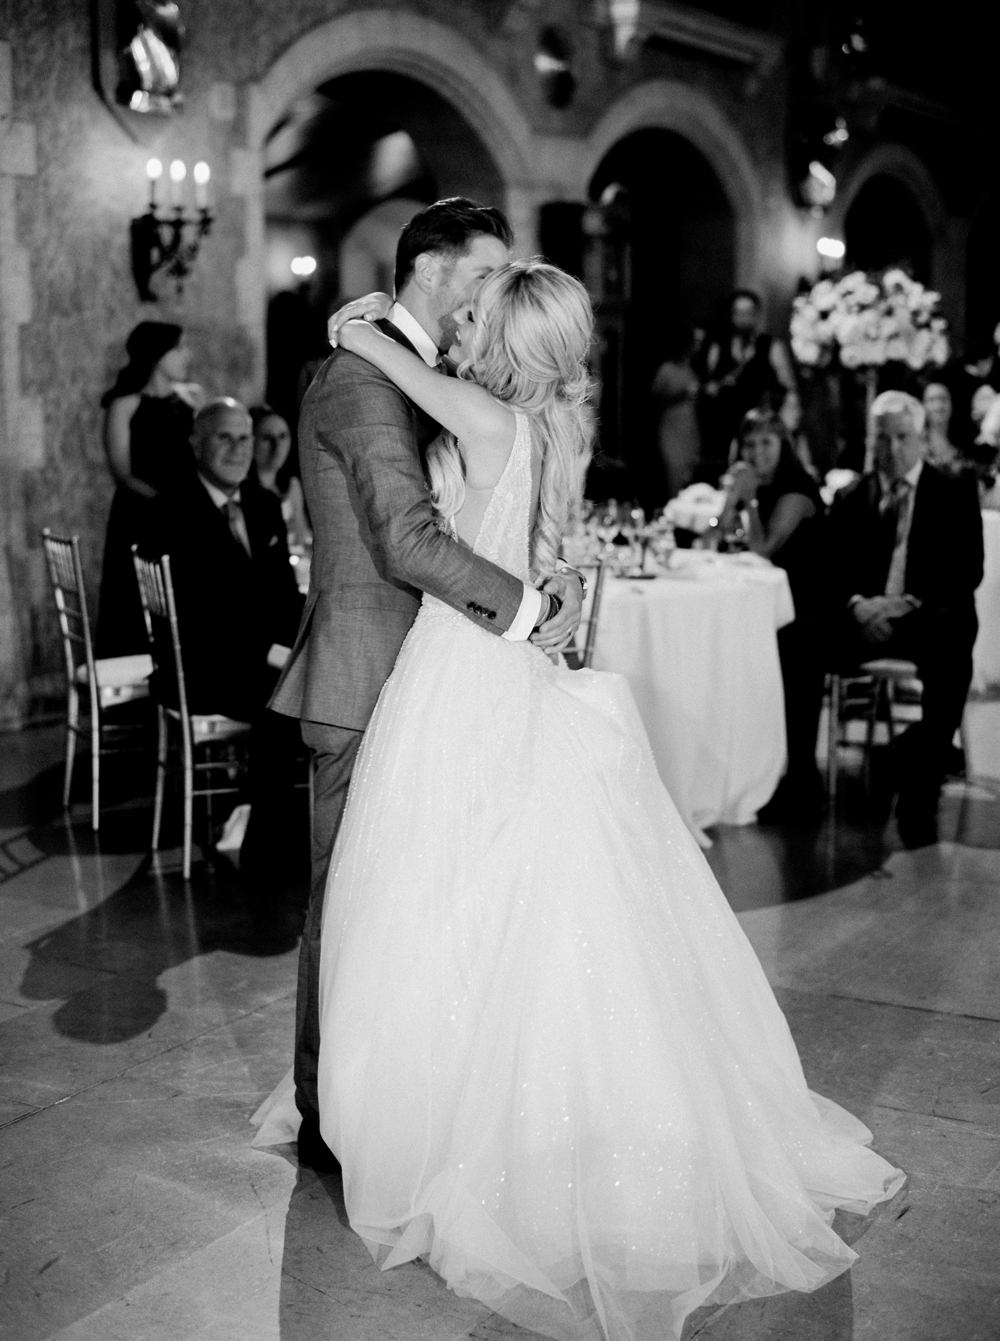 Mt Stephen Hall Reception First Dance at Fairmont Banff Springs Hotel | Banff Rocky Mountain Wedding Photographers | Justine Milton fine art film photography